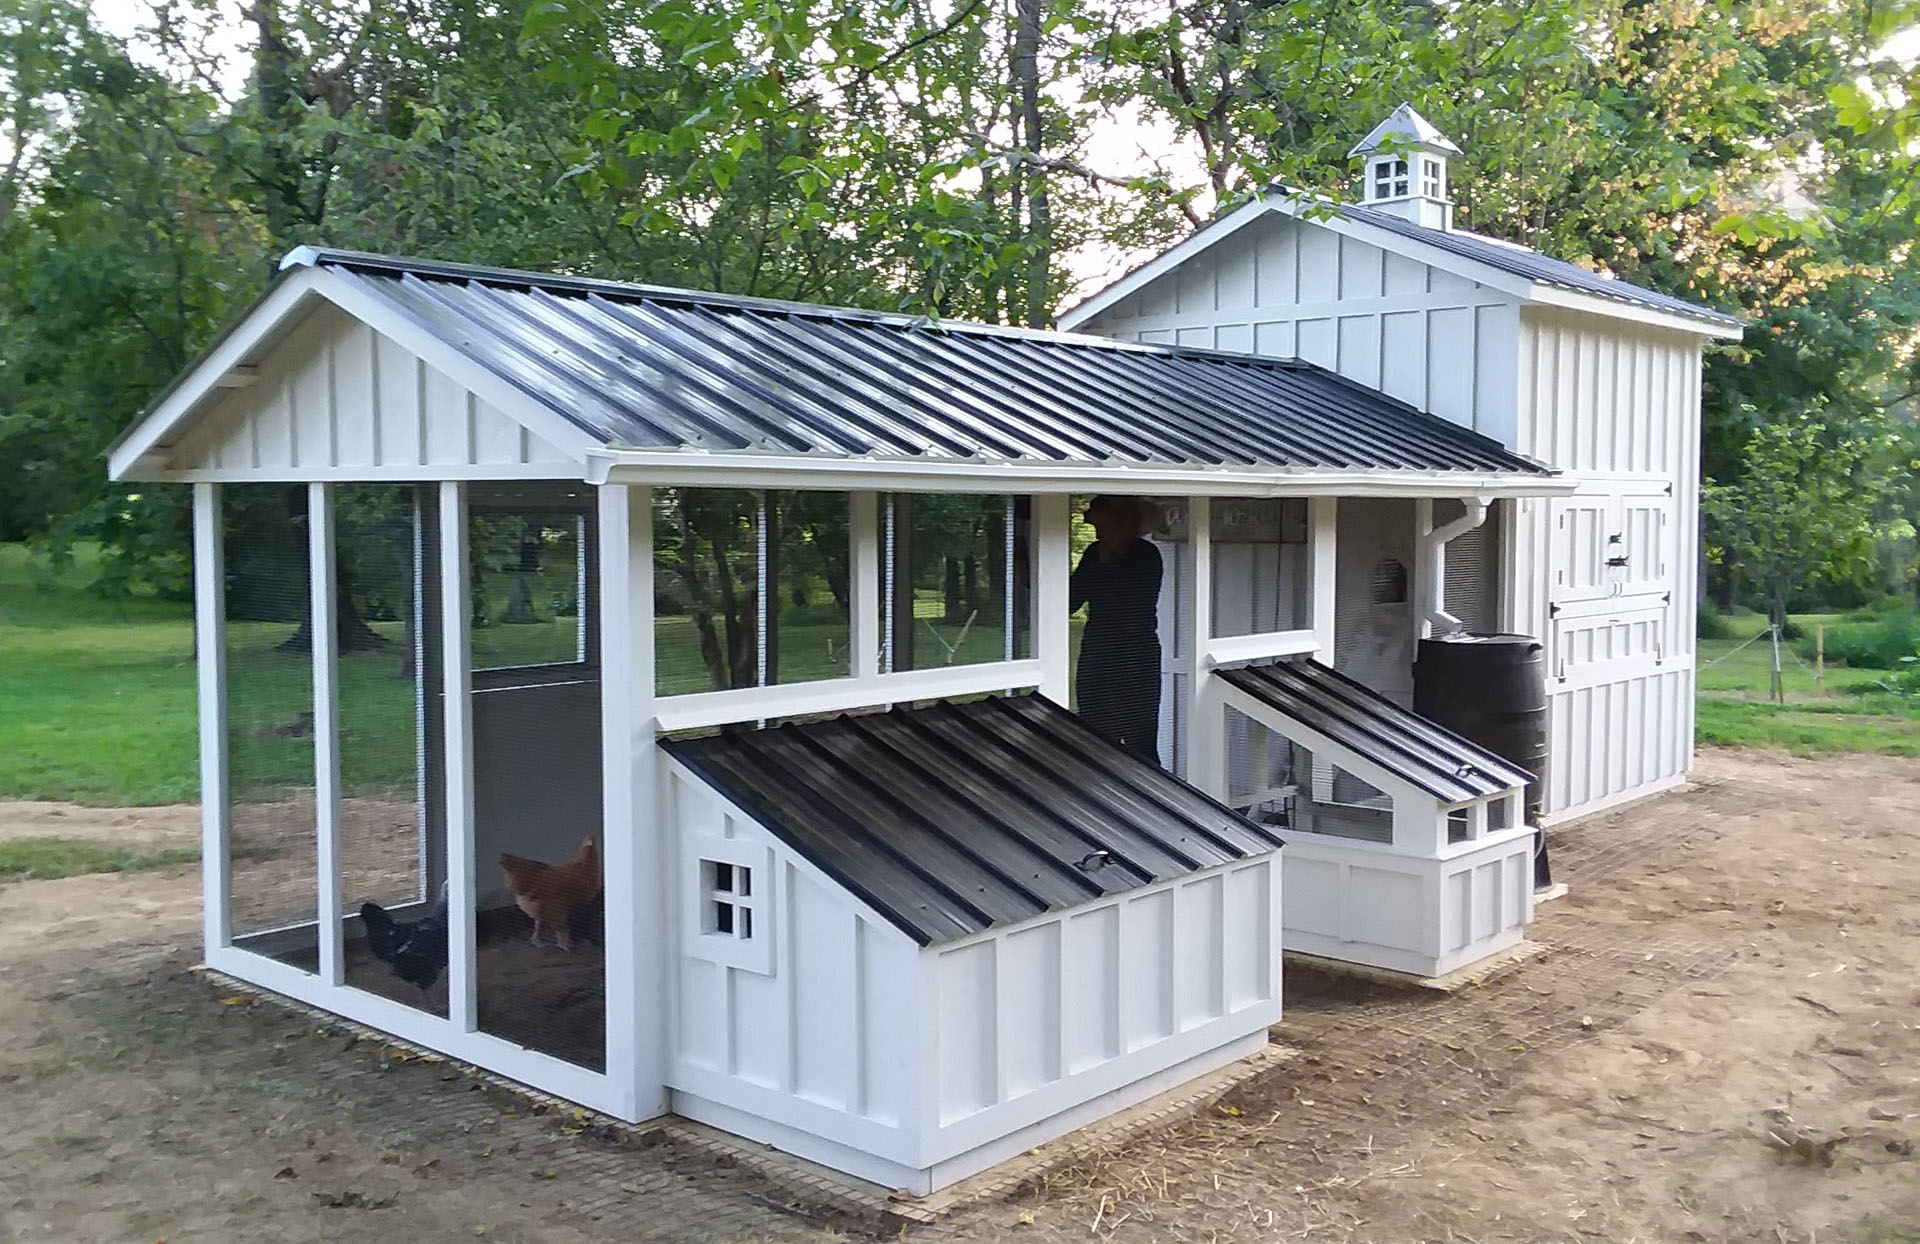 Custom Craftsman chicken coop and duck house in Hamilton, Virginia with duck dipper